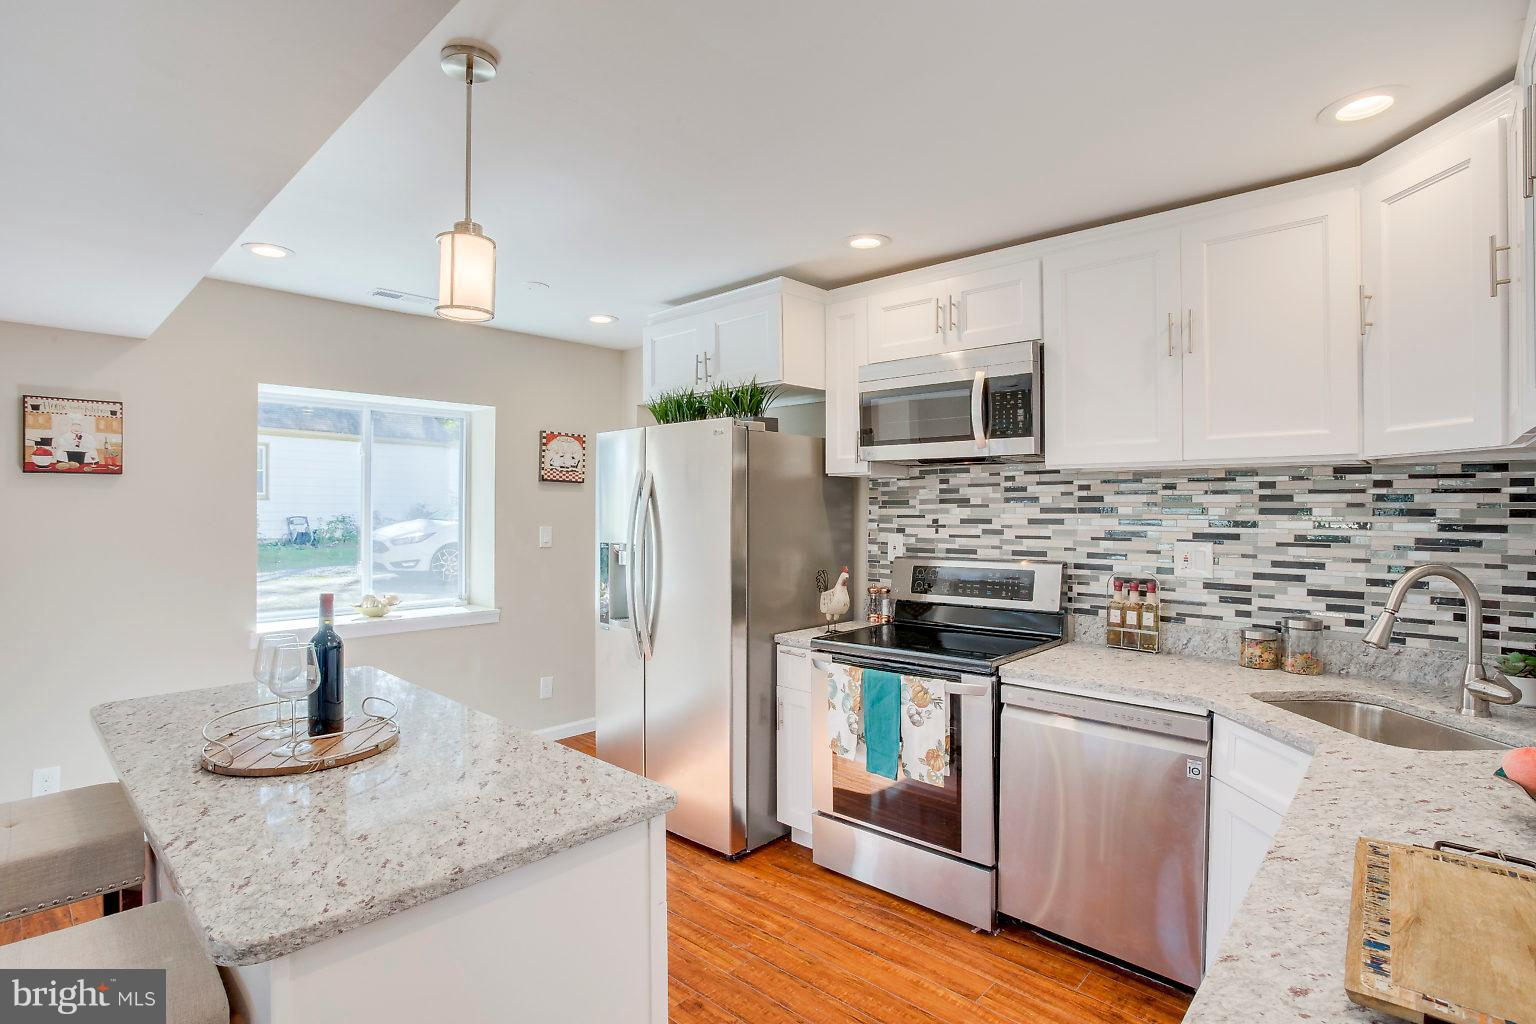 2930 N ROLLING ROAD, BALTIMORE, MD 21244